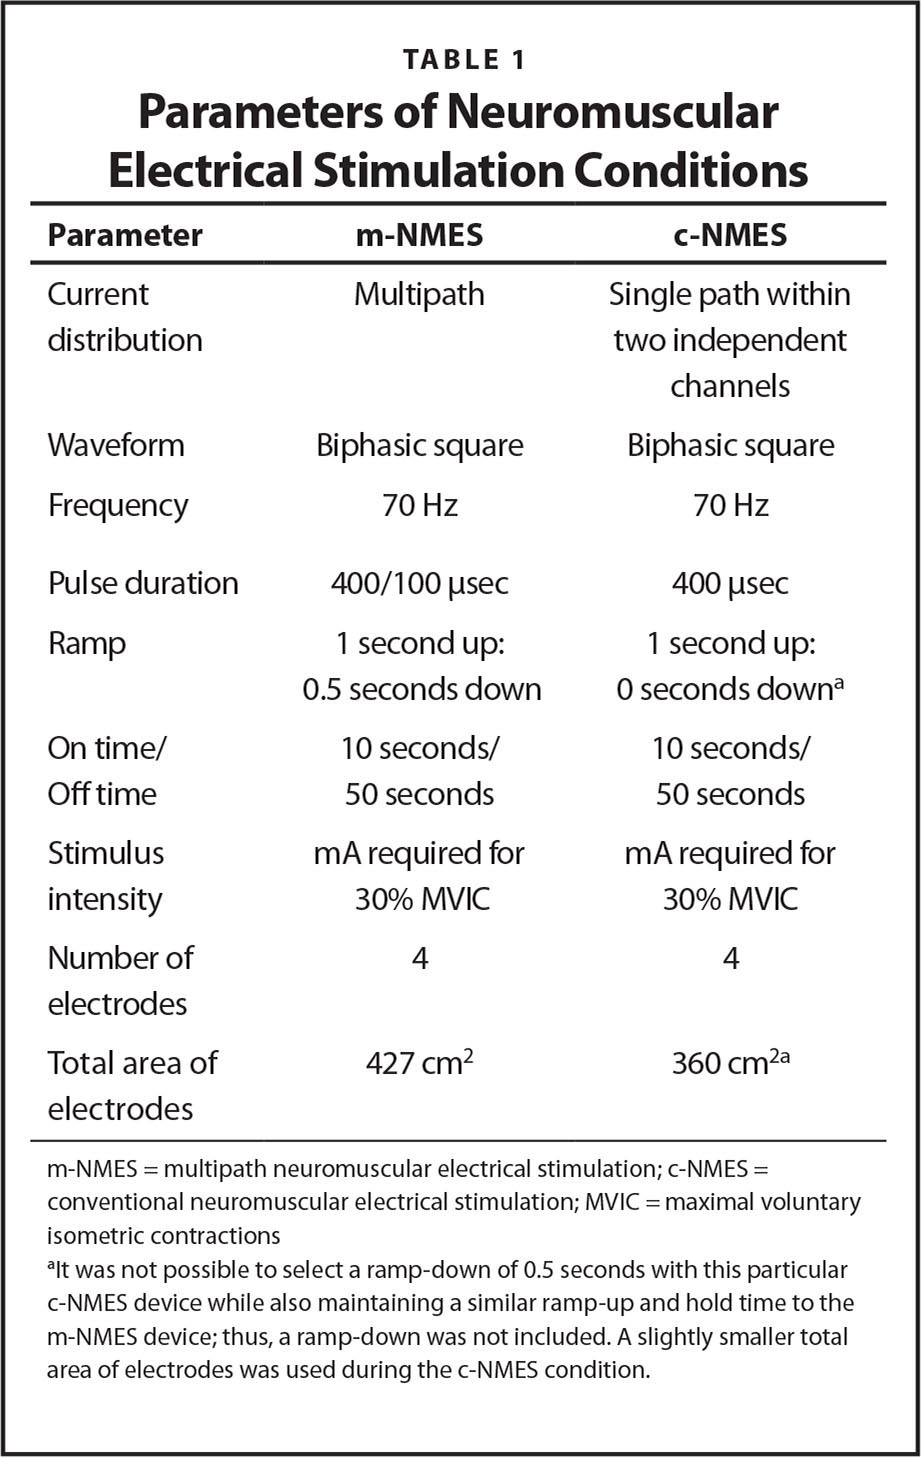 Parameters of Neuromuscular Electrical Stimulation Conditions